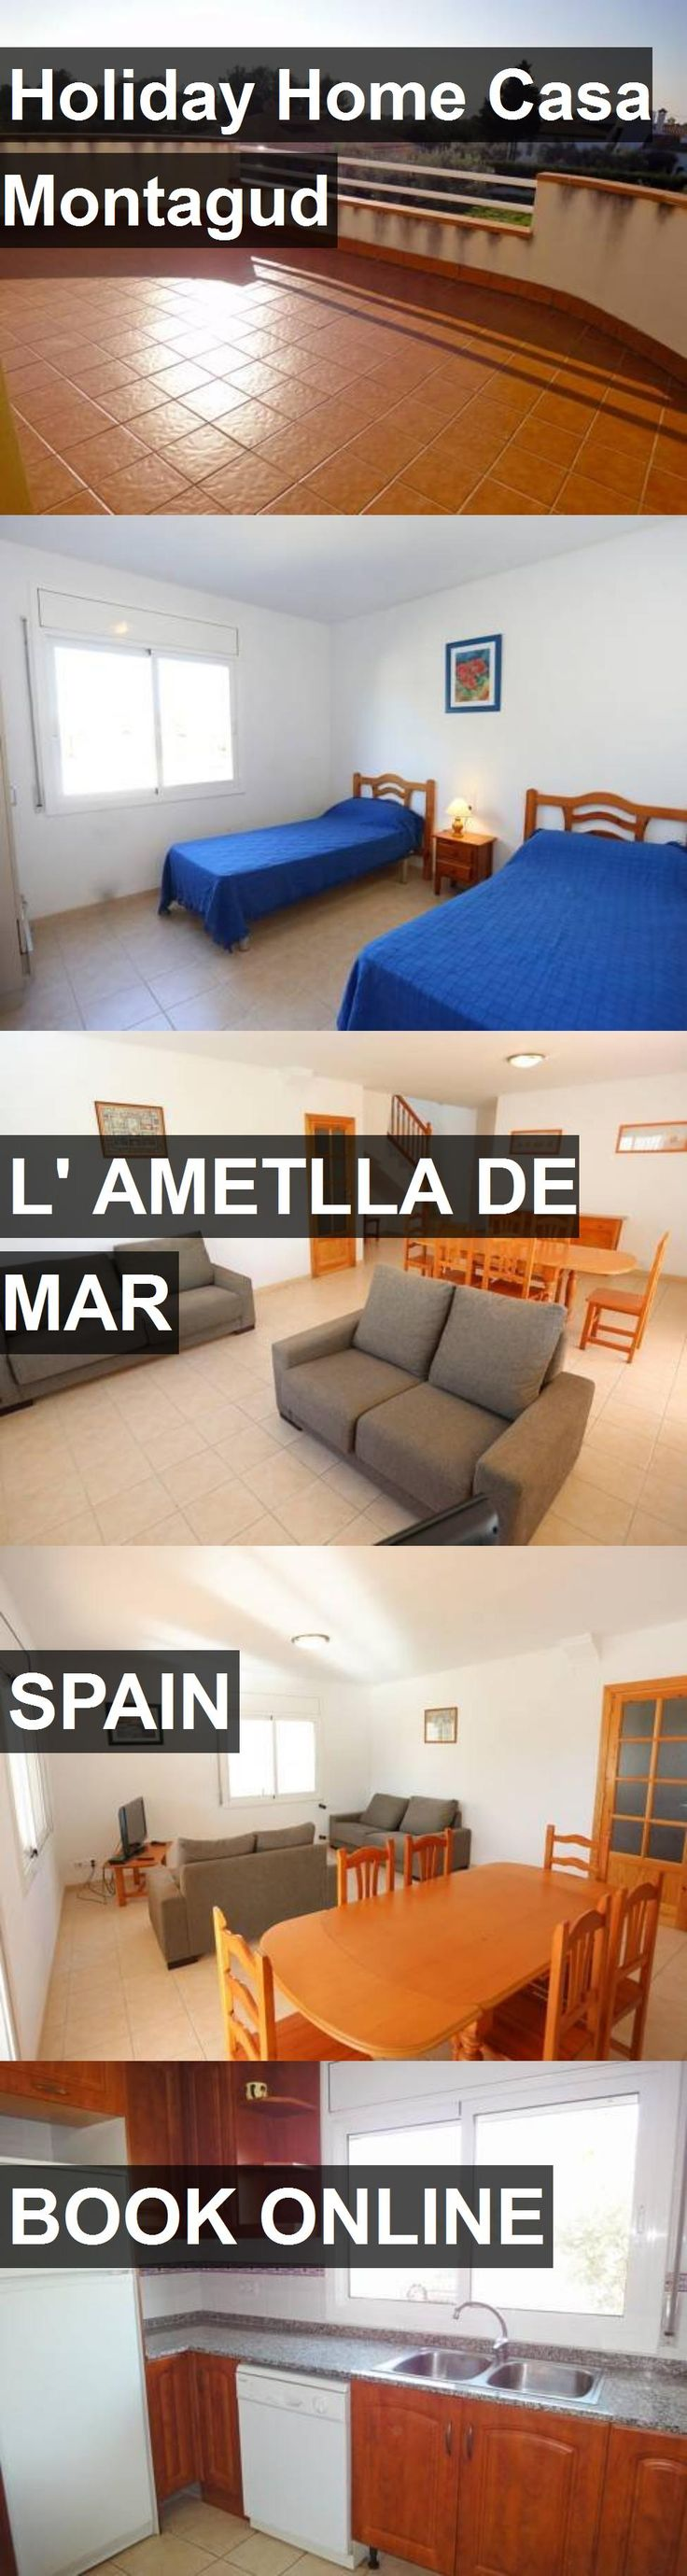 Hotel Holiday Home Casa Montagud in l' Ametlla de Mar, Spain. For more information, photos, reviews and best prices please follow the link. #Spain #l'AmetlladeMar #travel #vacation #hotel